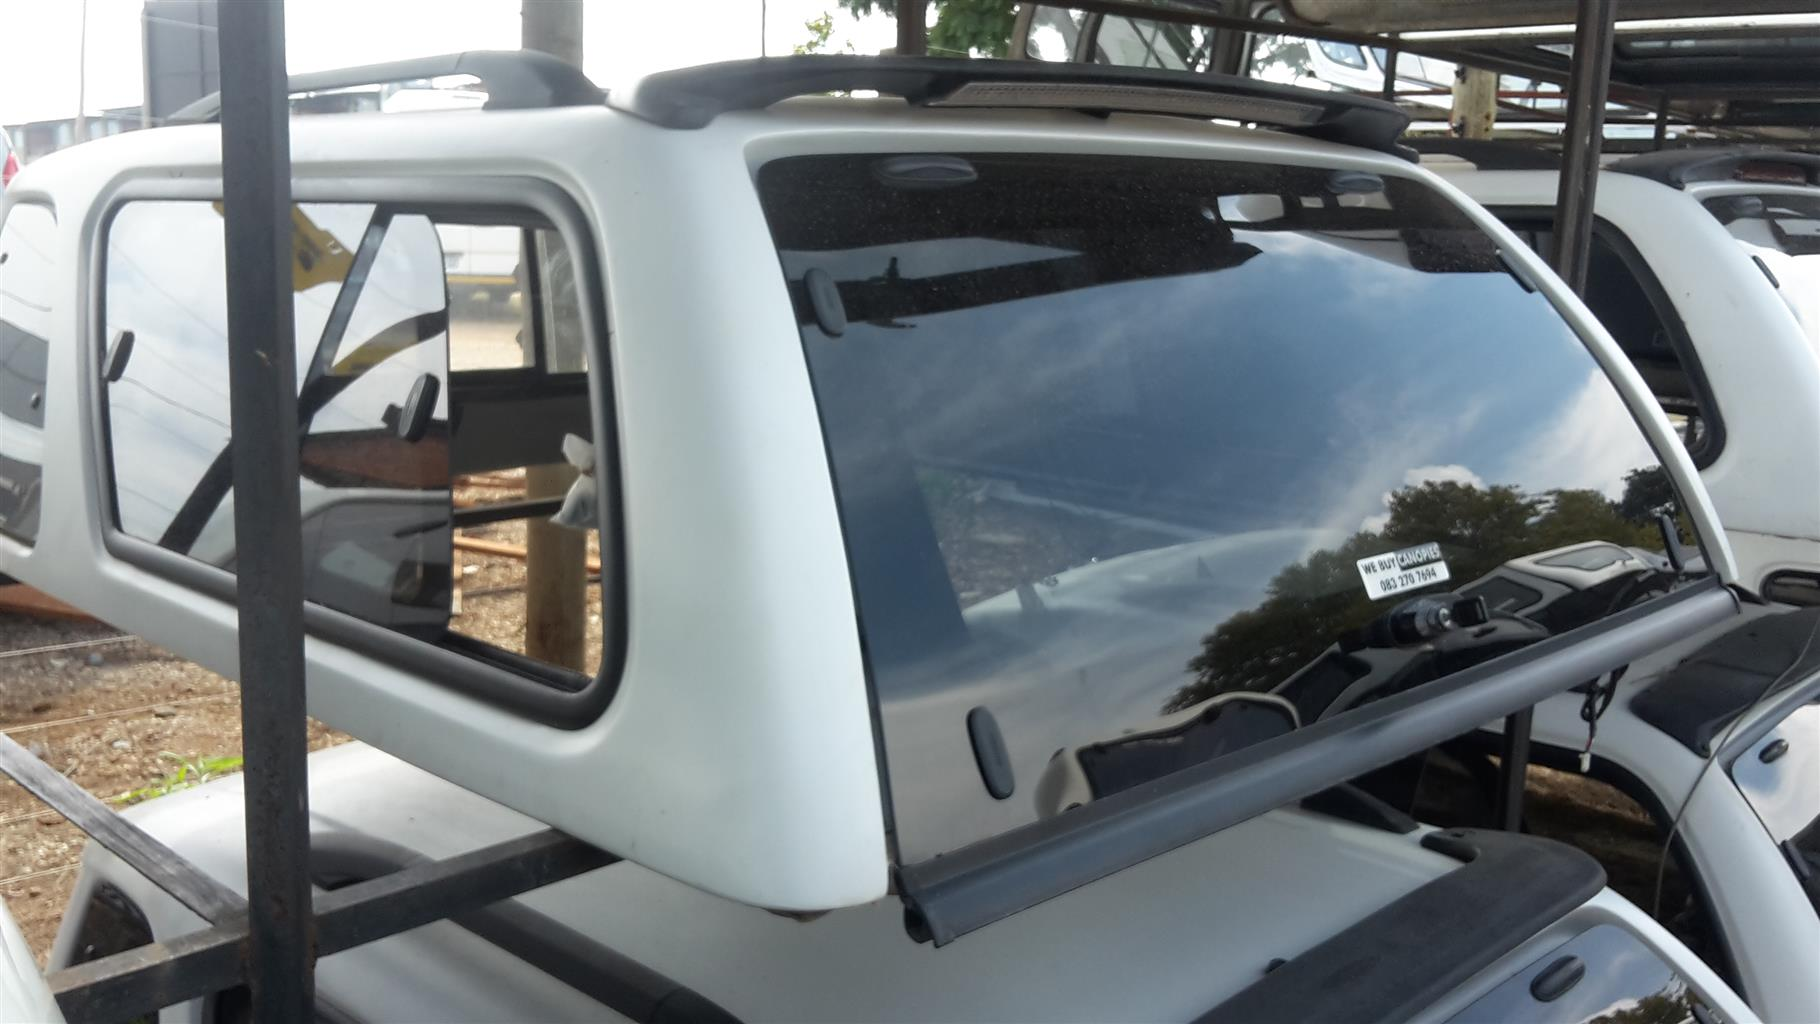 T6 Double cab Carry boy Canopy & carry boy canopy in All Ads in South Africa | Junk Mail